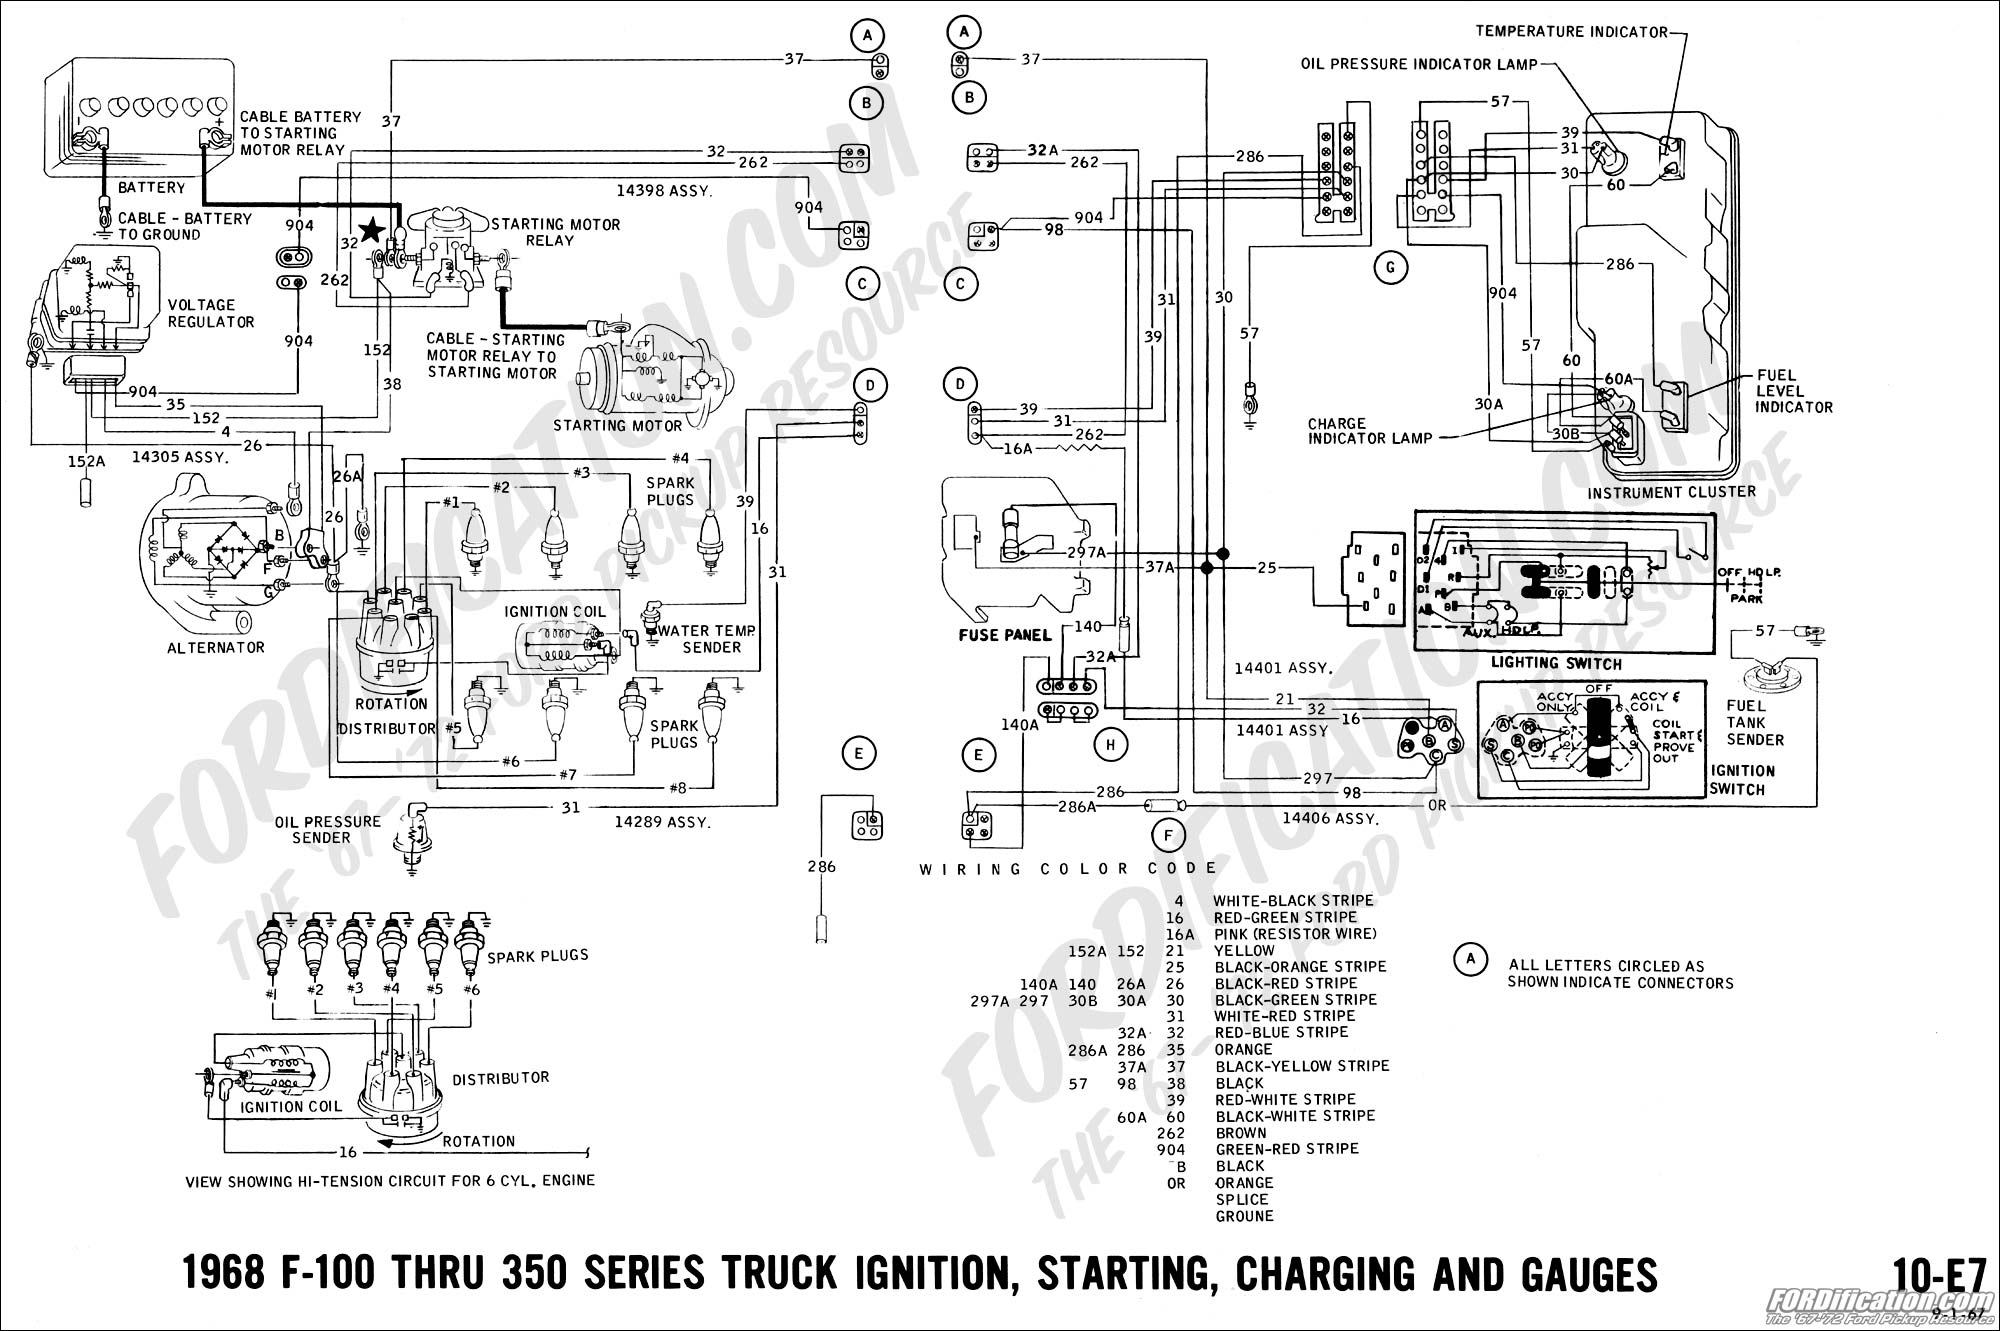 1968 f-100 thru f-350 ignition, starting, charging and gauges (2 of